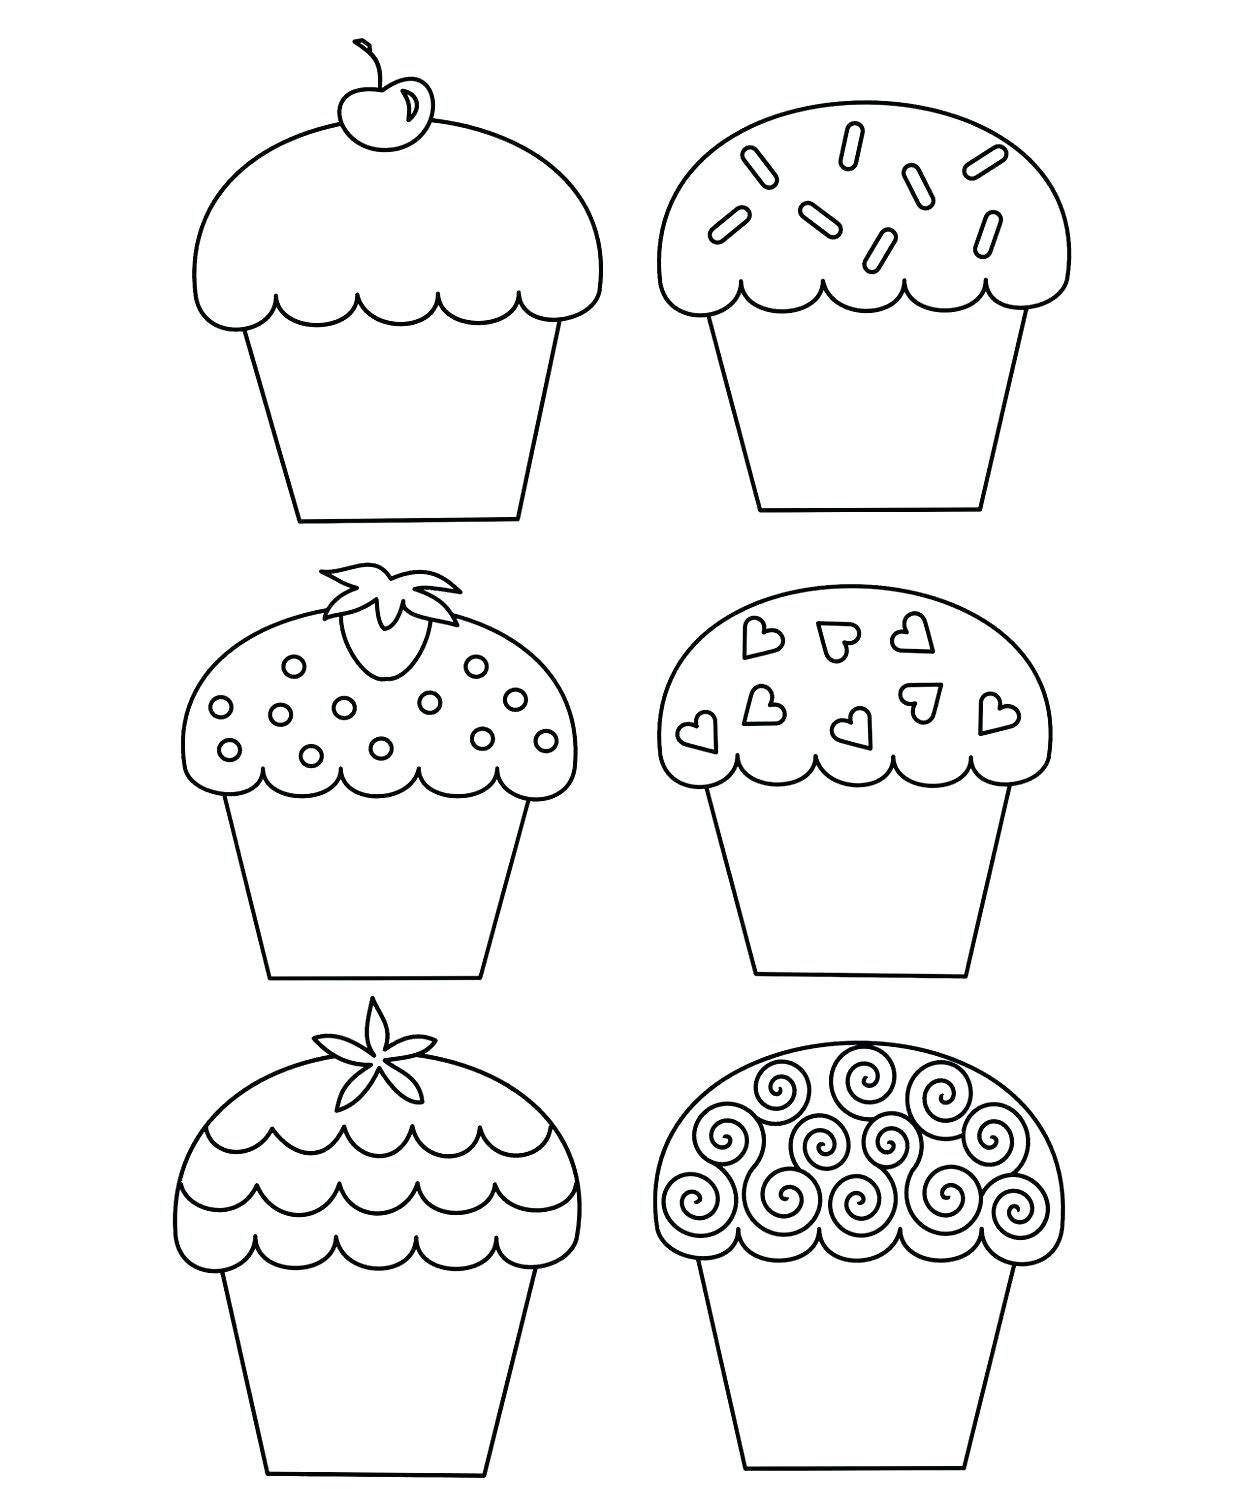 Cupcake Drawing Template at GetDrawings.com | Free for personal use ...